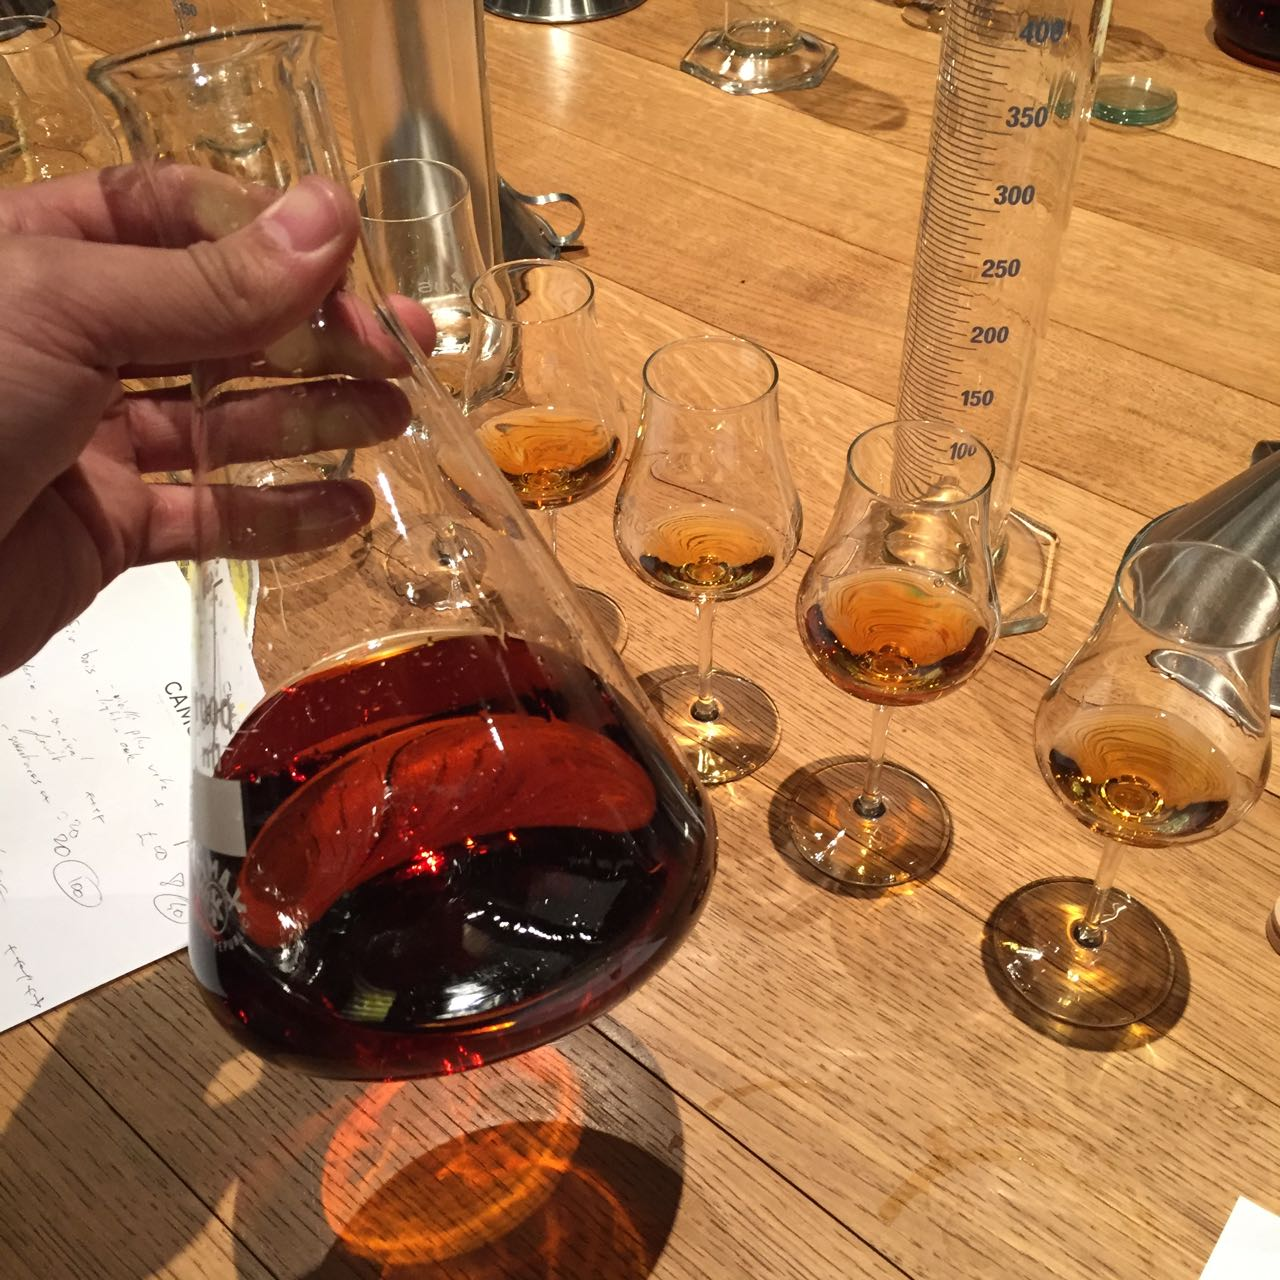 Our Visit to Camus Cognac Or How to Blend Your Own Cognac